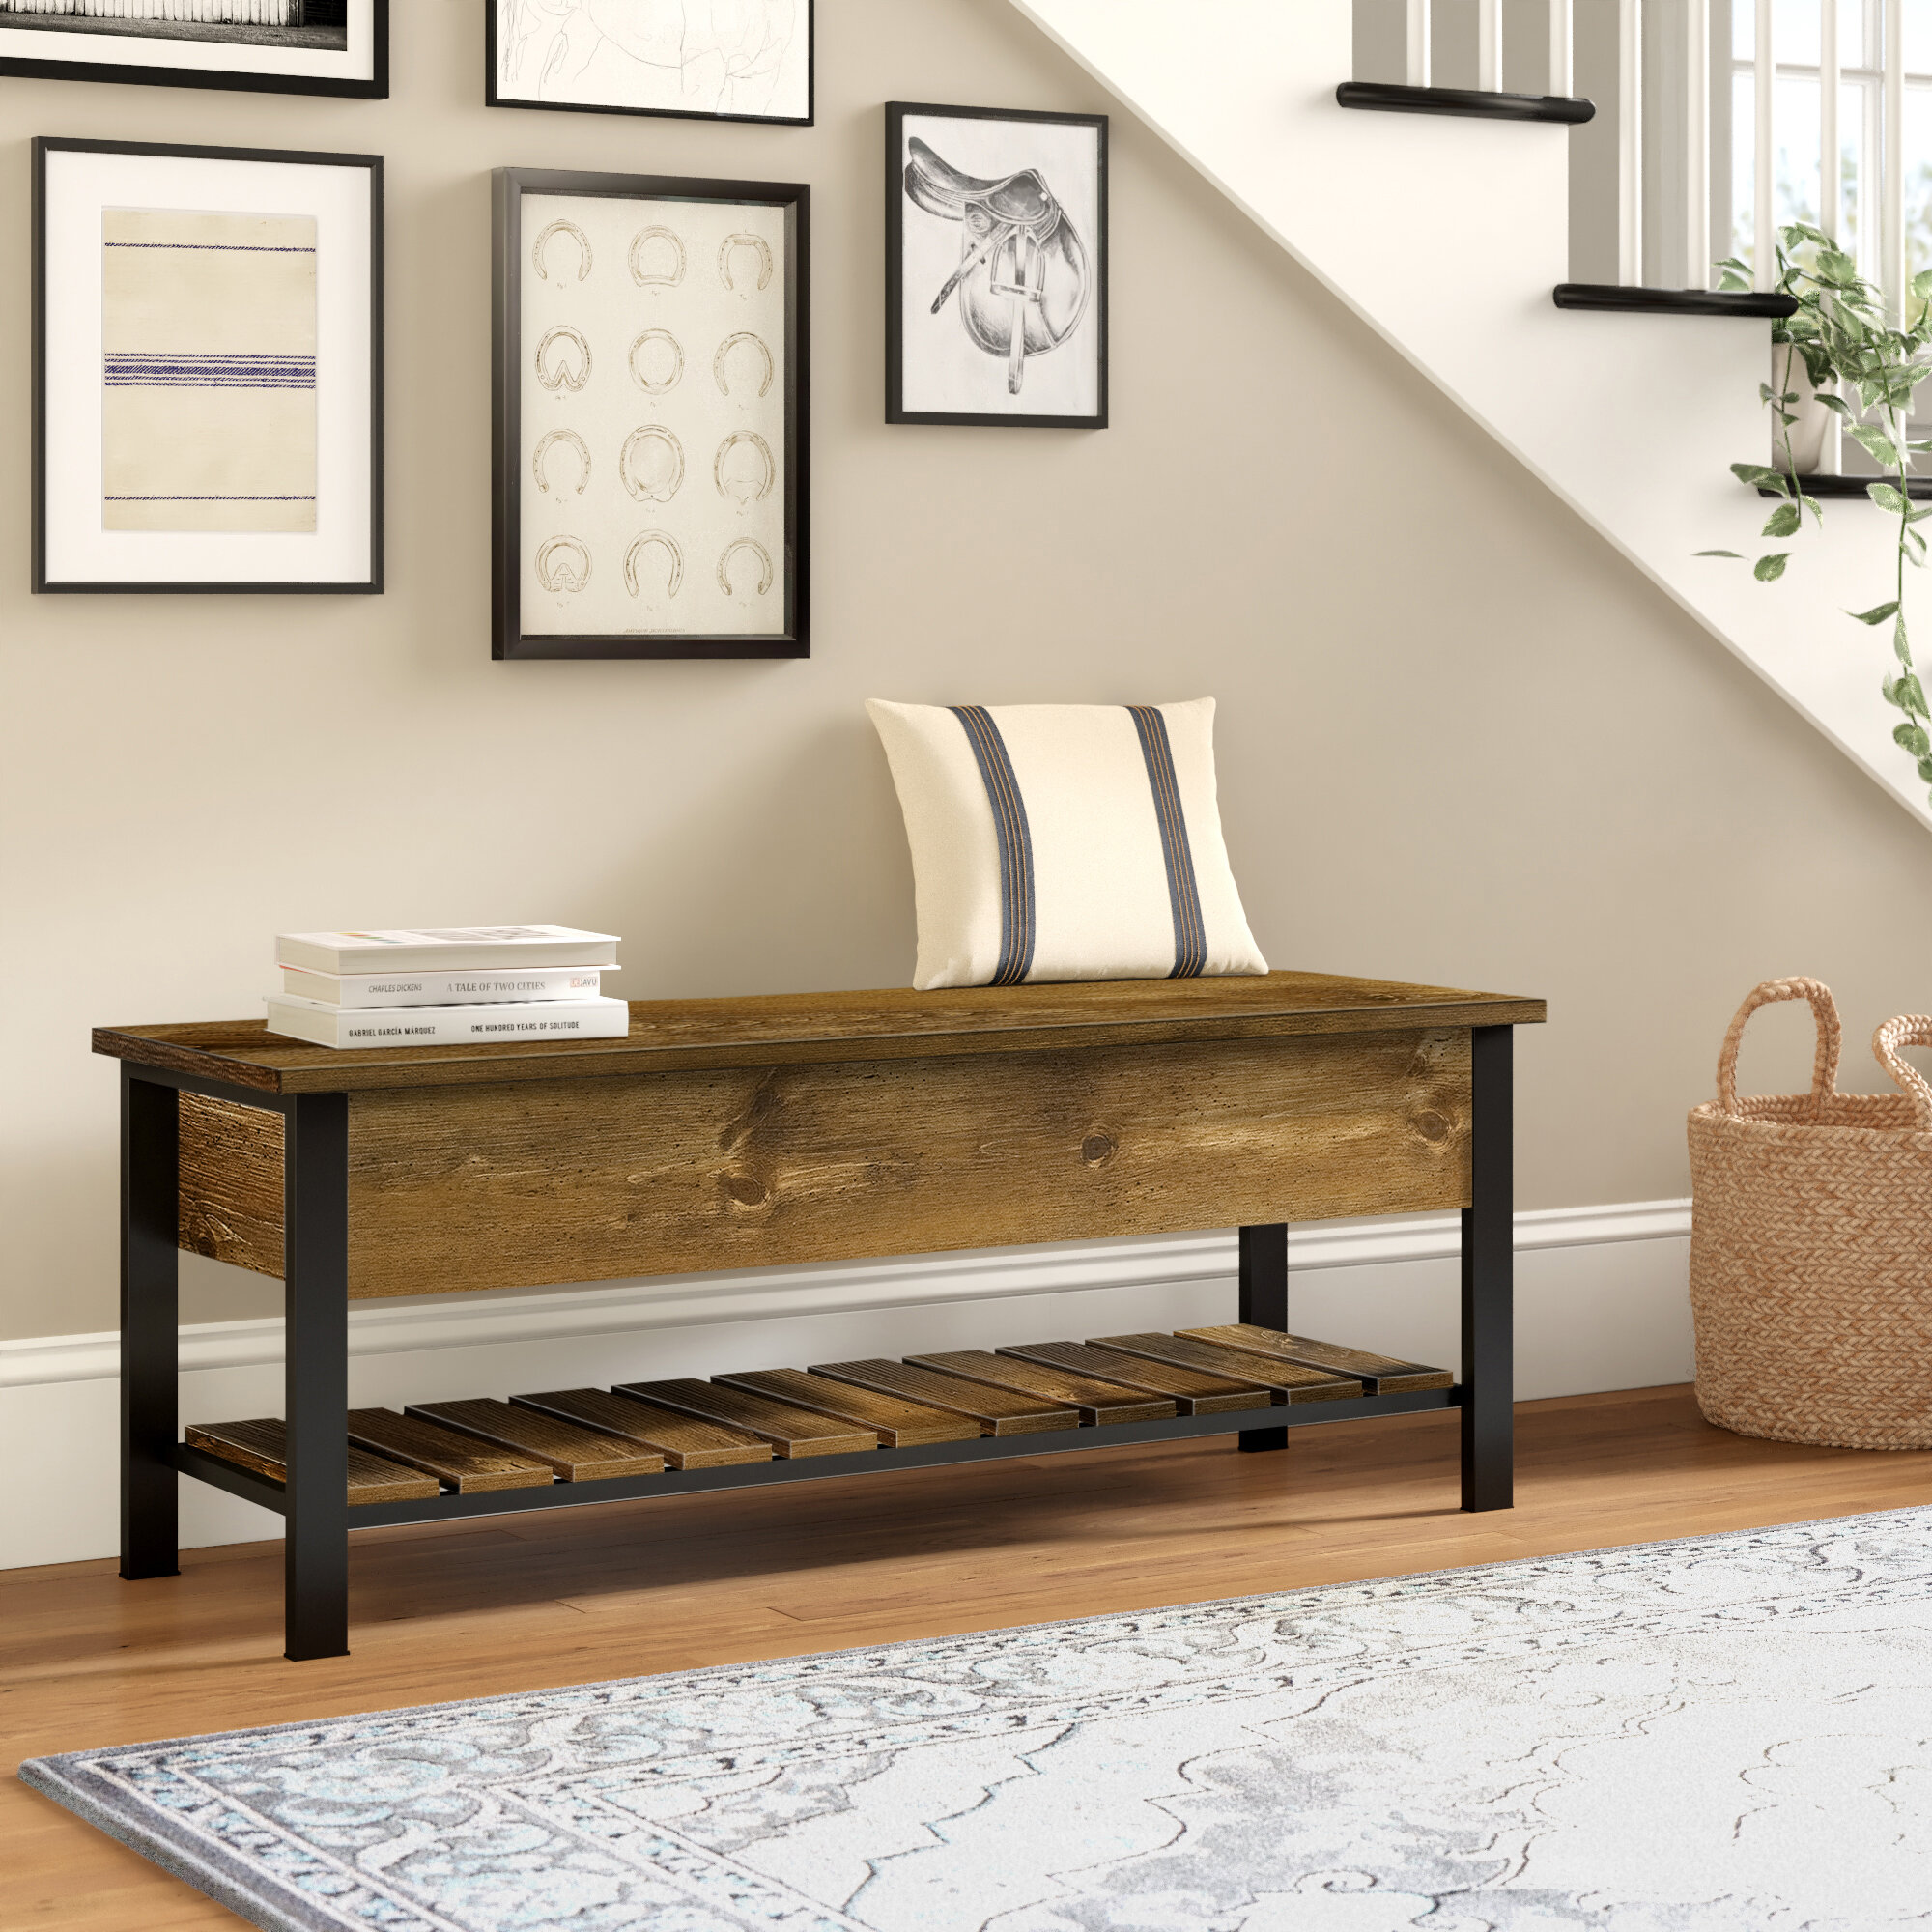 Entryway Benches You Ll Love In 2021 Wayfair Ca